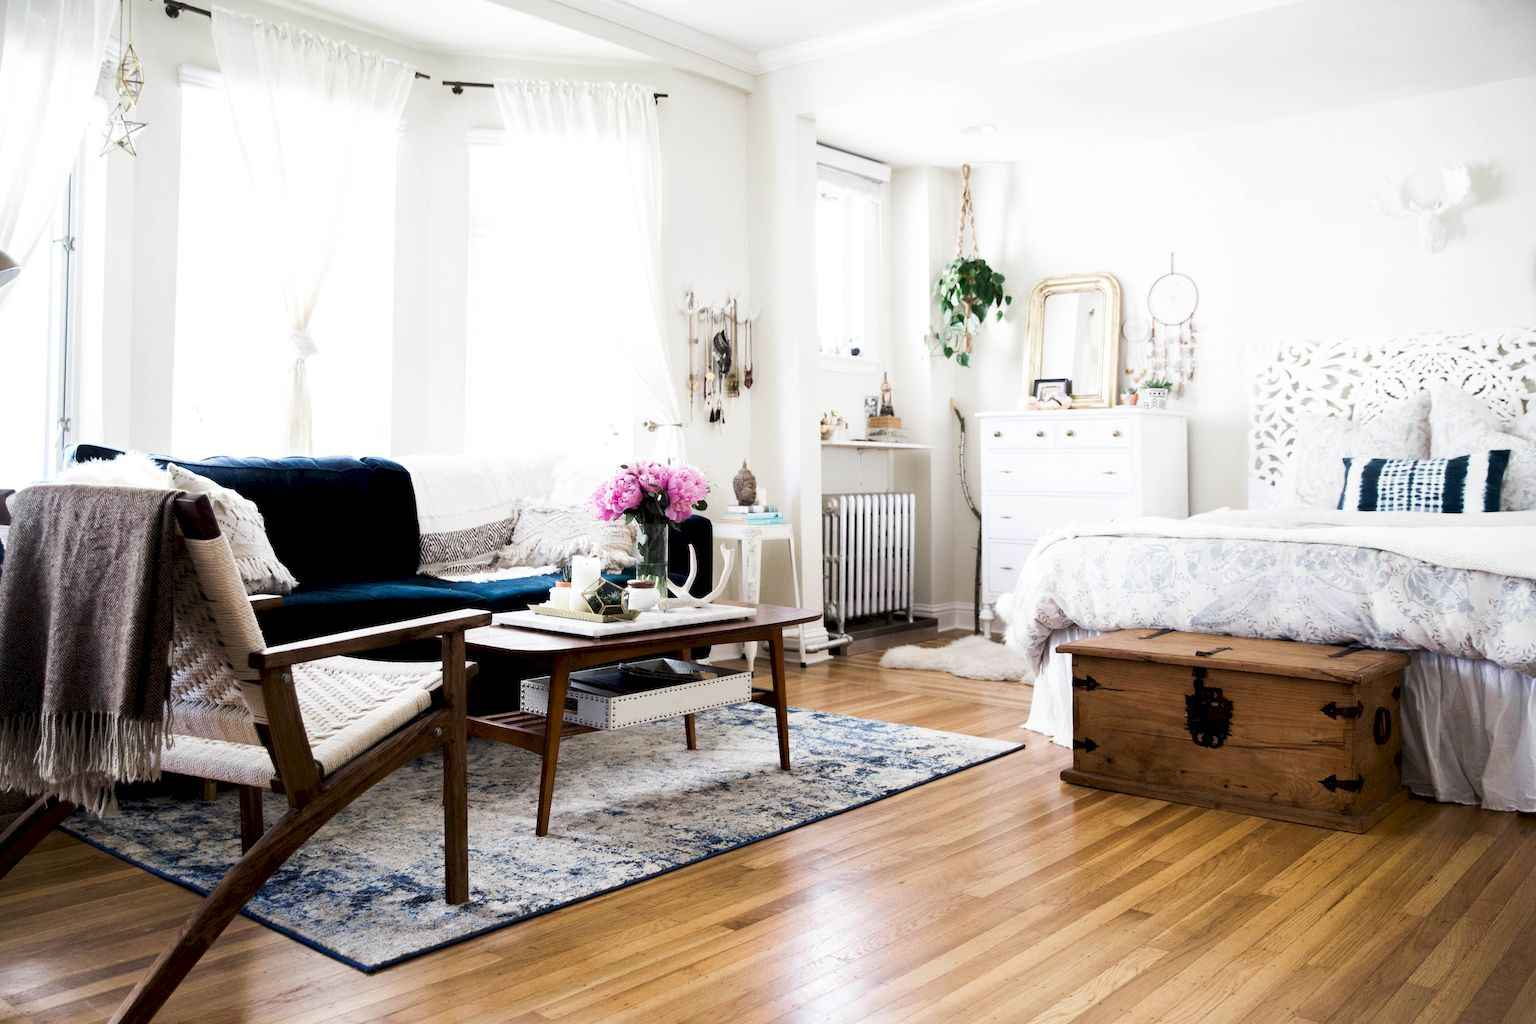 Cool small apartment decorating ideas on a budget (50)